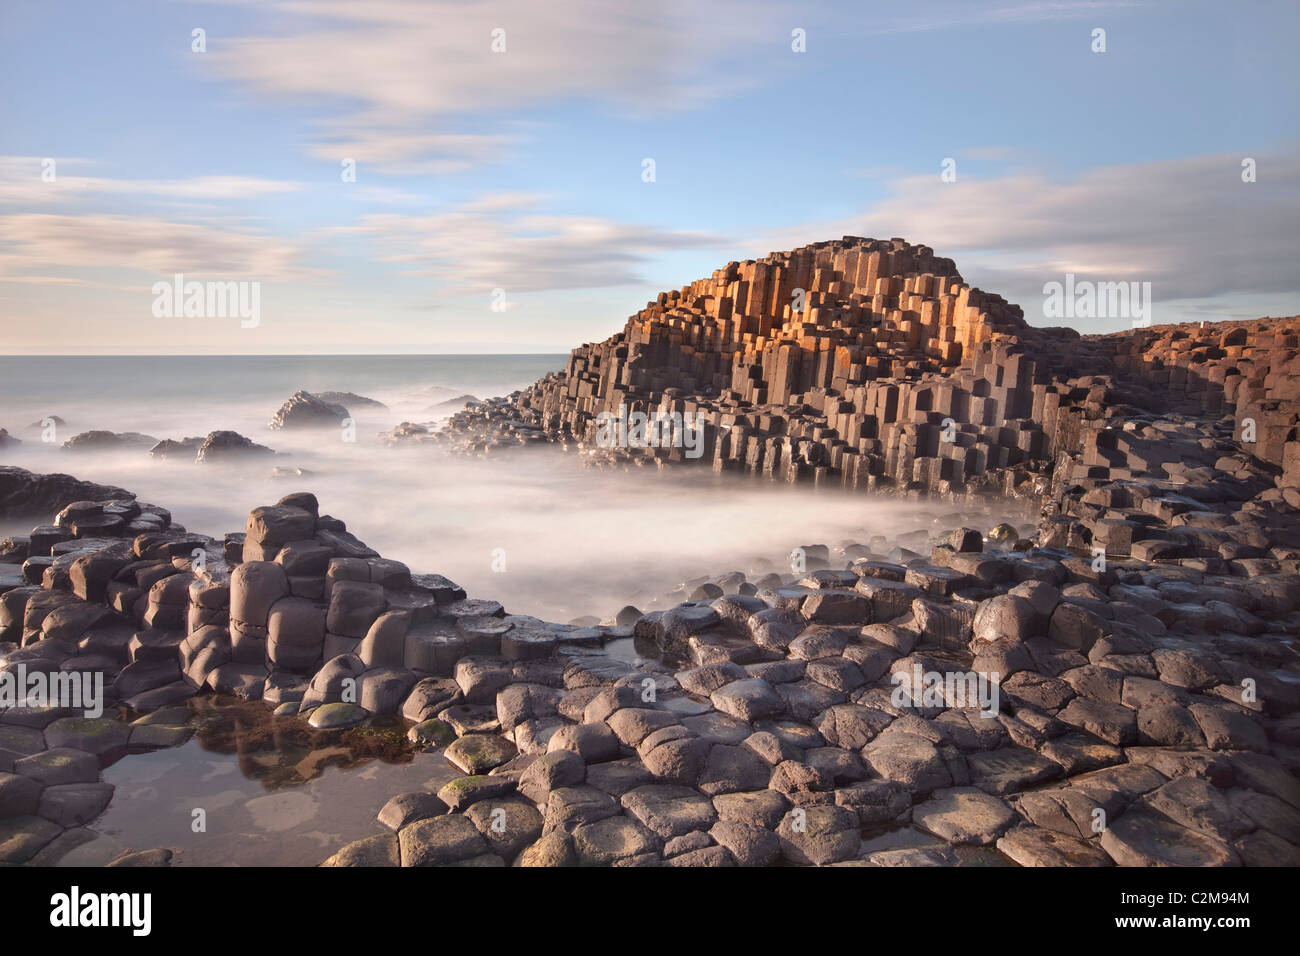 Giants causeway captured in the evening. - Stock Image